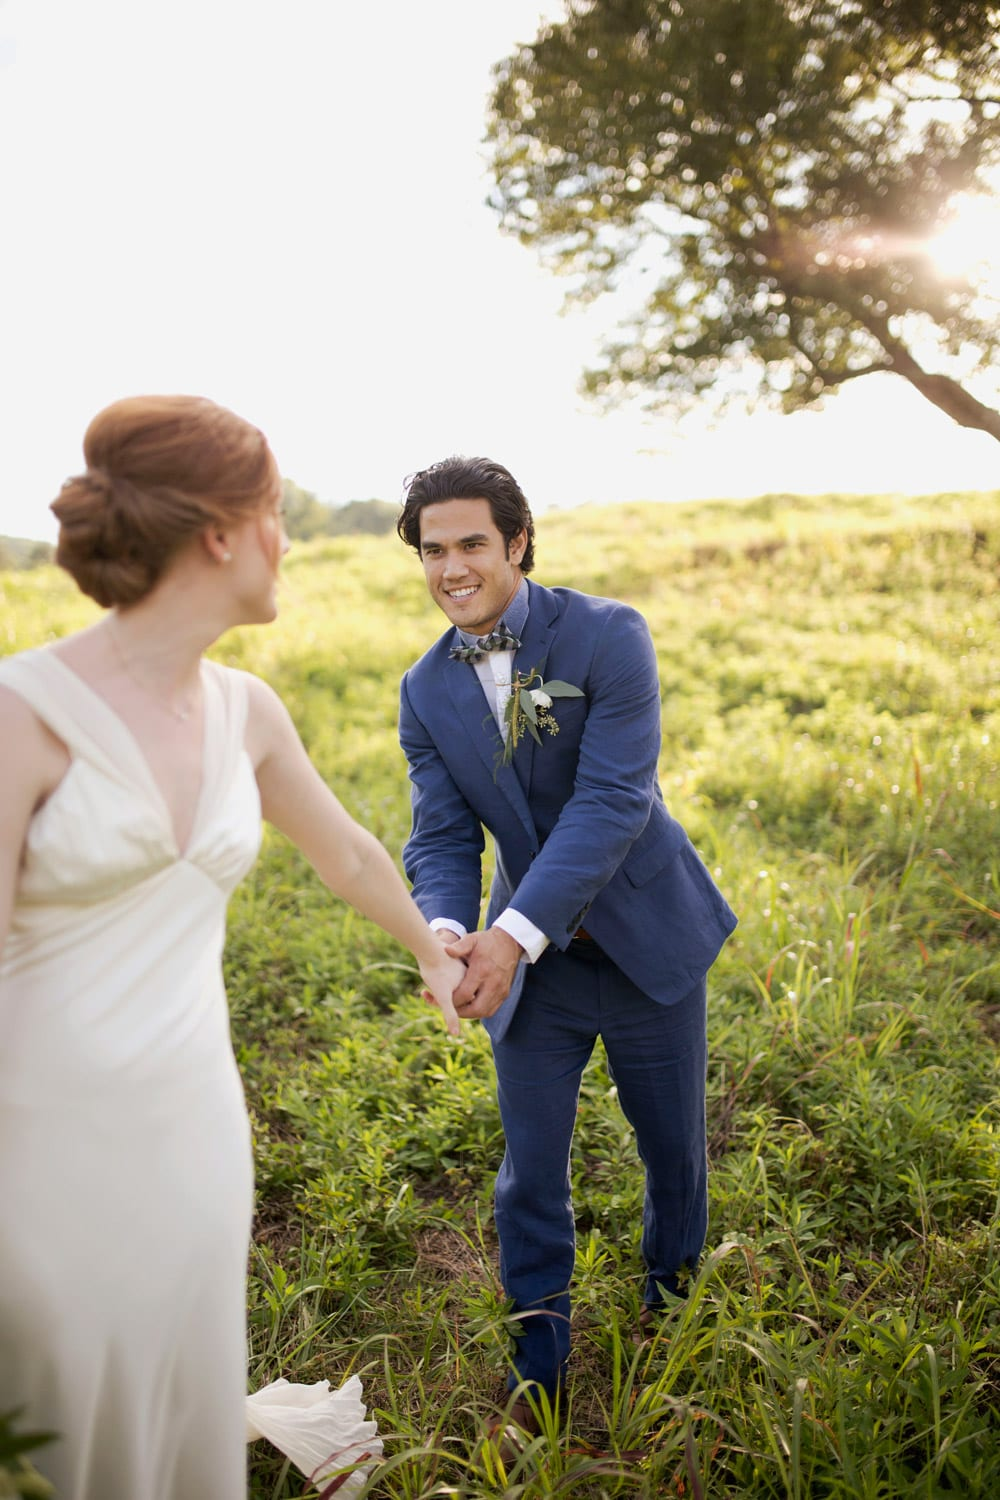 Groom follows bride by the hand in pasture